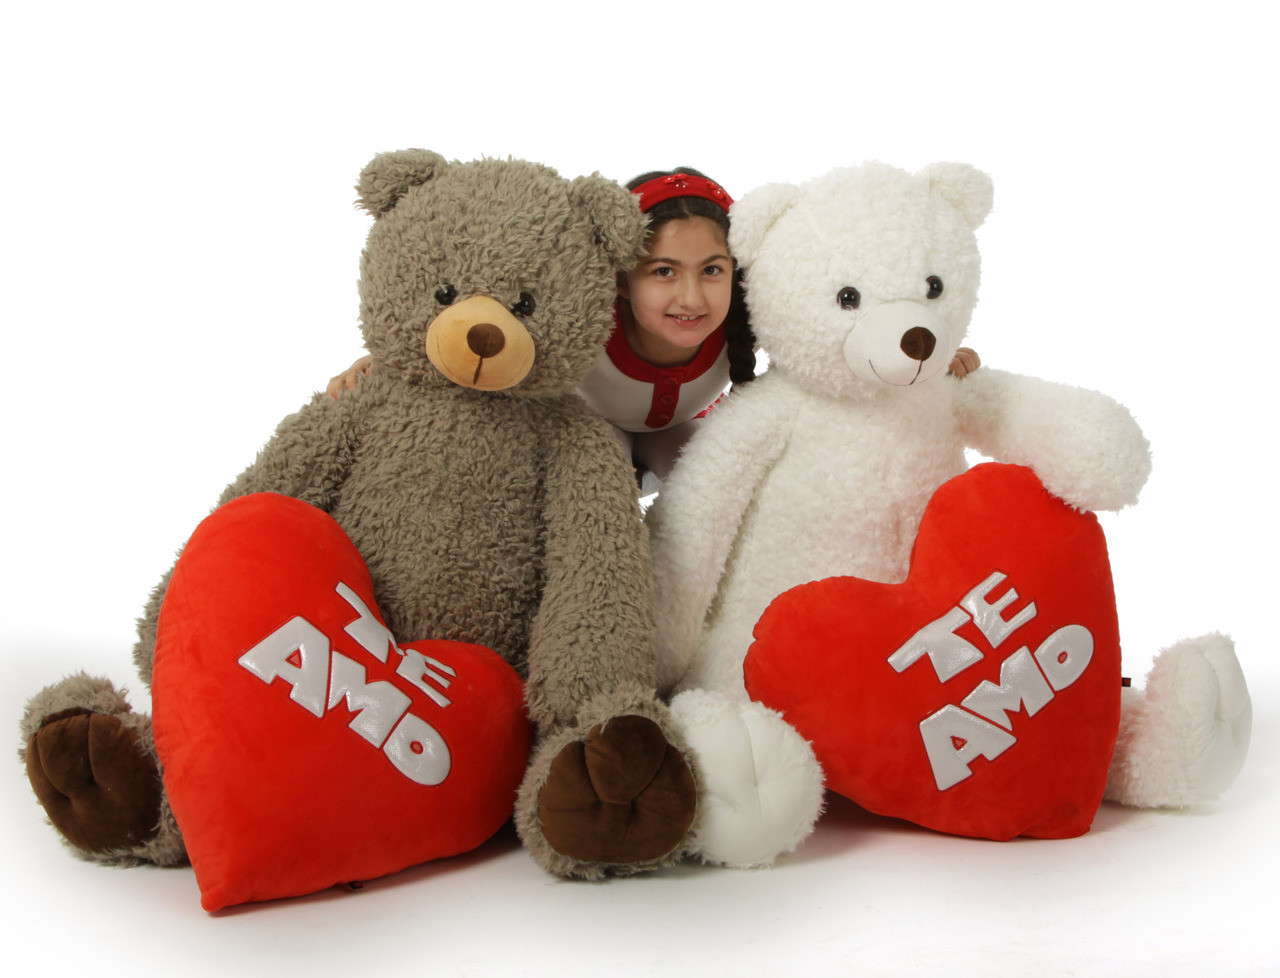 te amo valentines day teddy bears are 42in of woolly soft cuteness - Giant Teddy Bear For Valentines Day